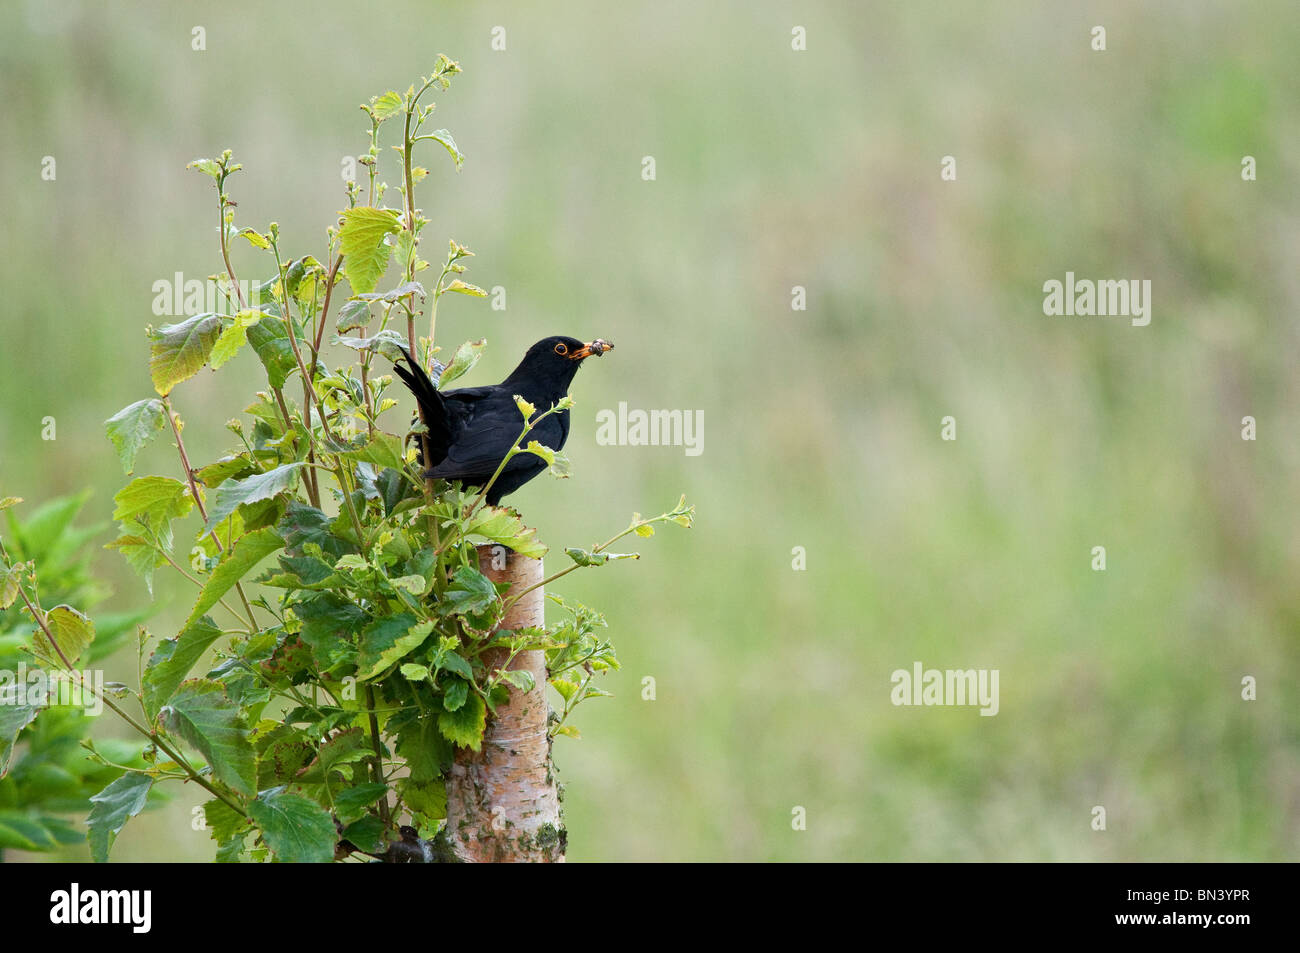 Blackbird with insect - Stock Image